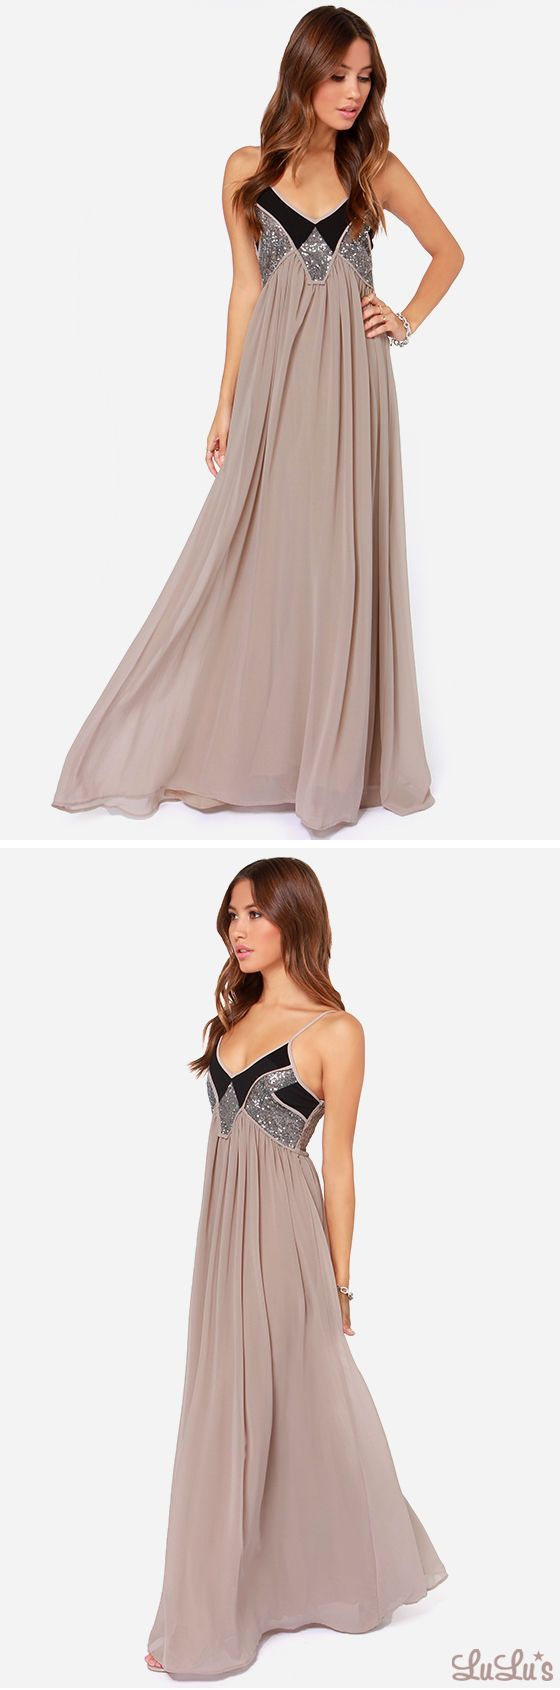 Top of The World Taupe Sequin Maxi Dress http://picturesfunnys.blogspot.com/